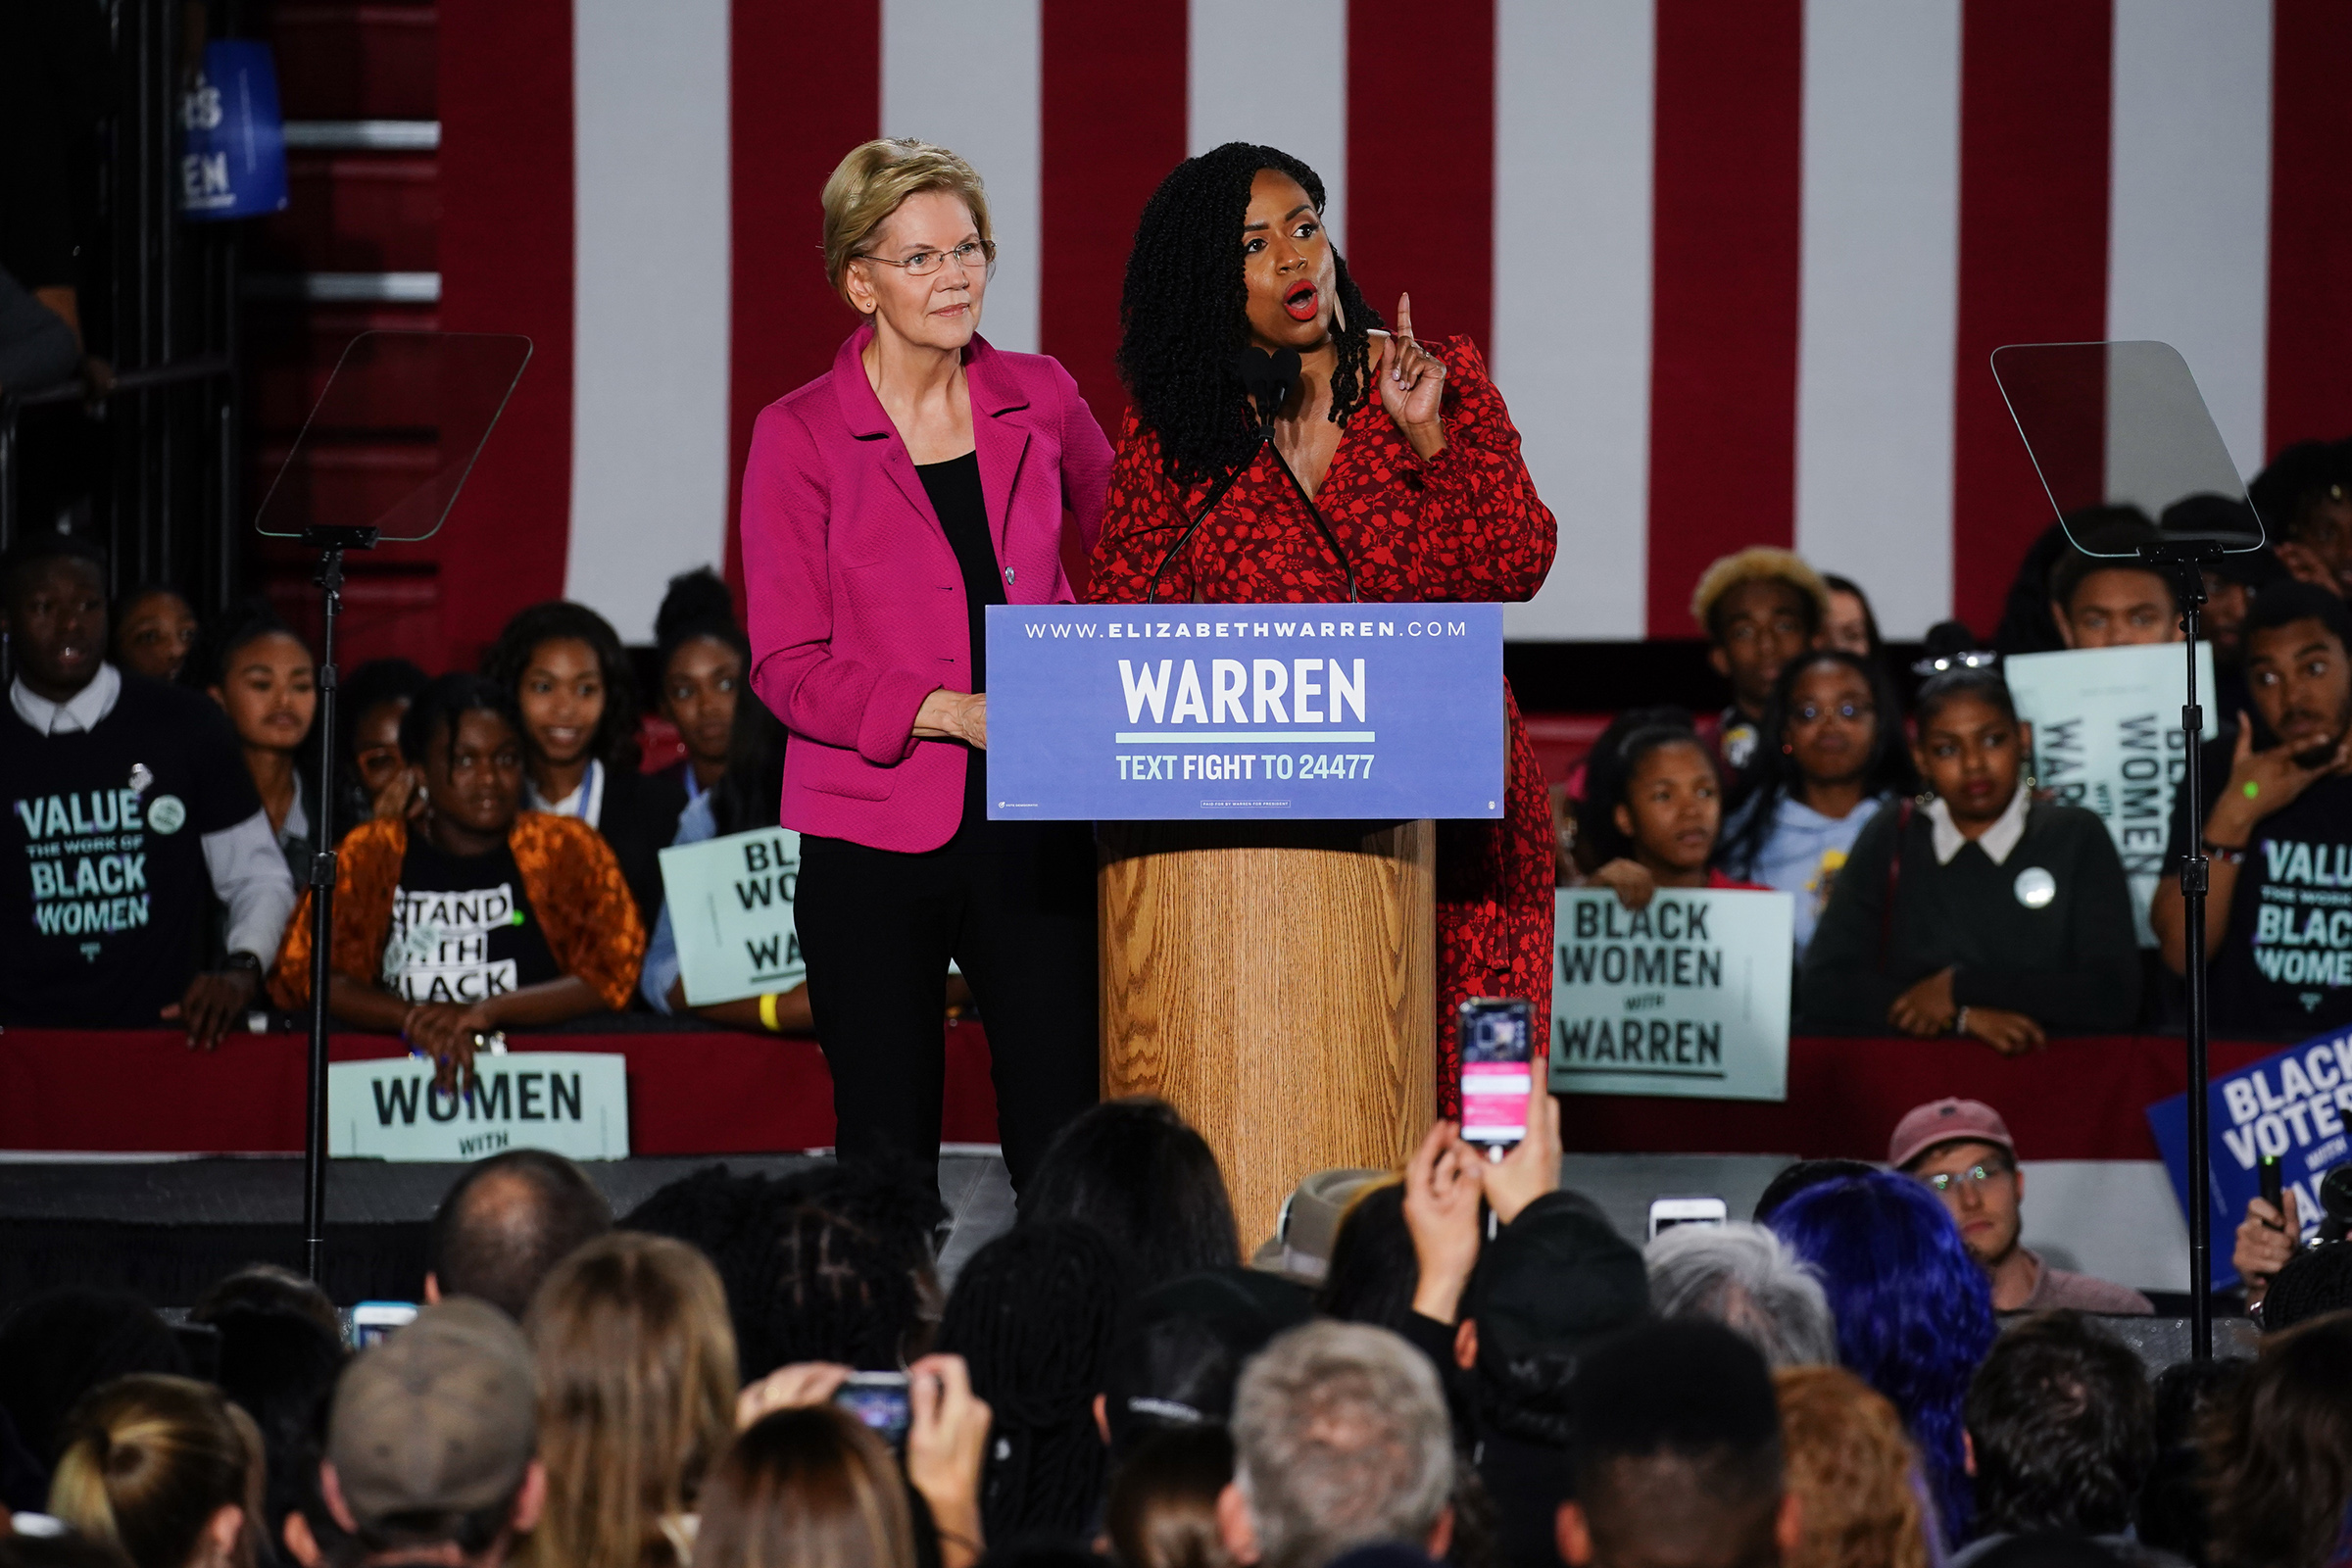 Democratic presidential candidate Sen. Elizabeth Warren (D-MA), stands with U.S. Rep. Ayanna Pressley (D-MA) as she addresses a group of protesters during a campaign event at Clark Atlanta University on Nov. 21, 2019.